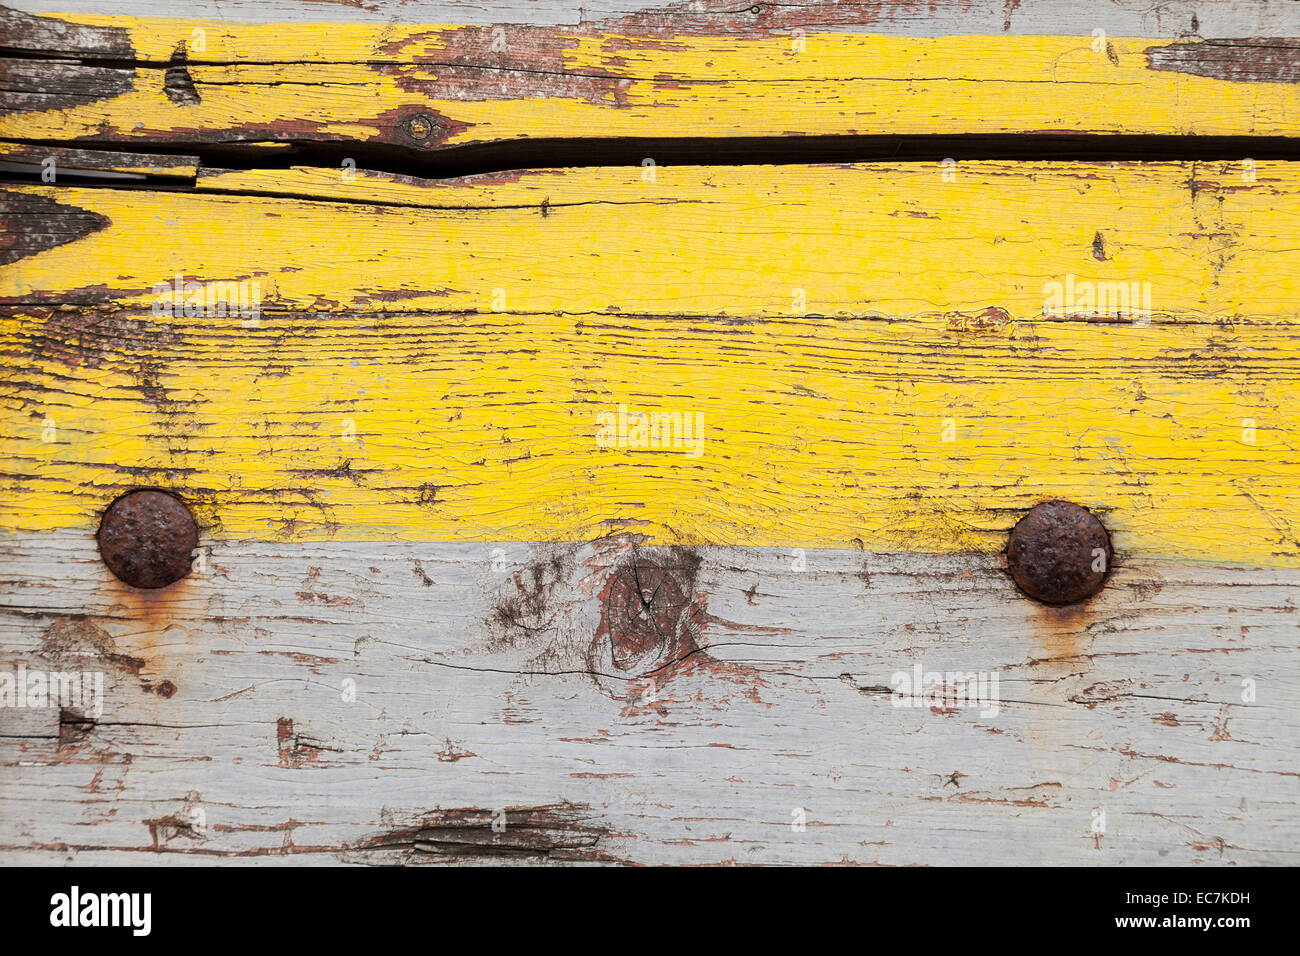 Weathered Wooden Board With Yellow And Grey Paint Close Up